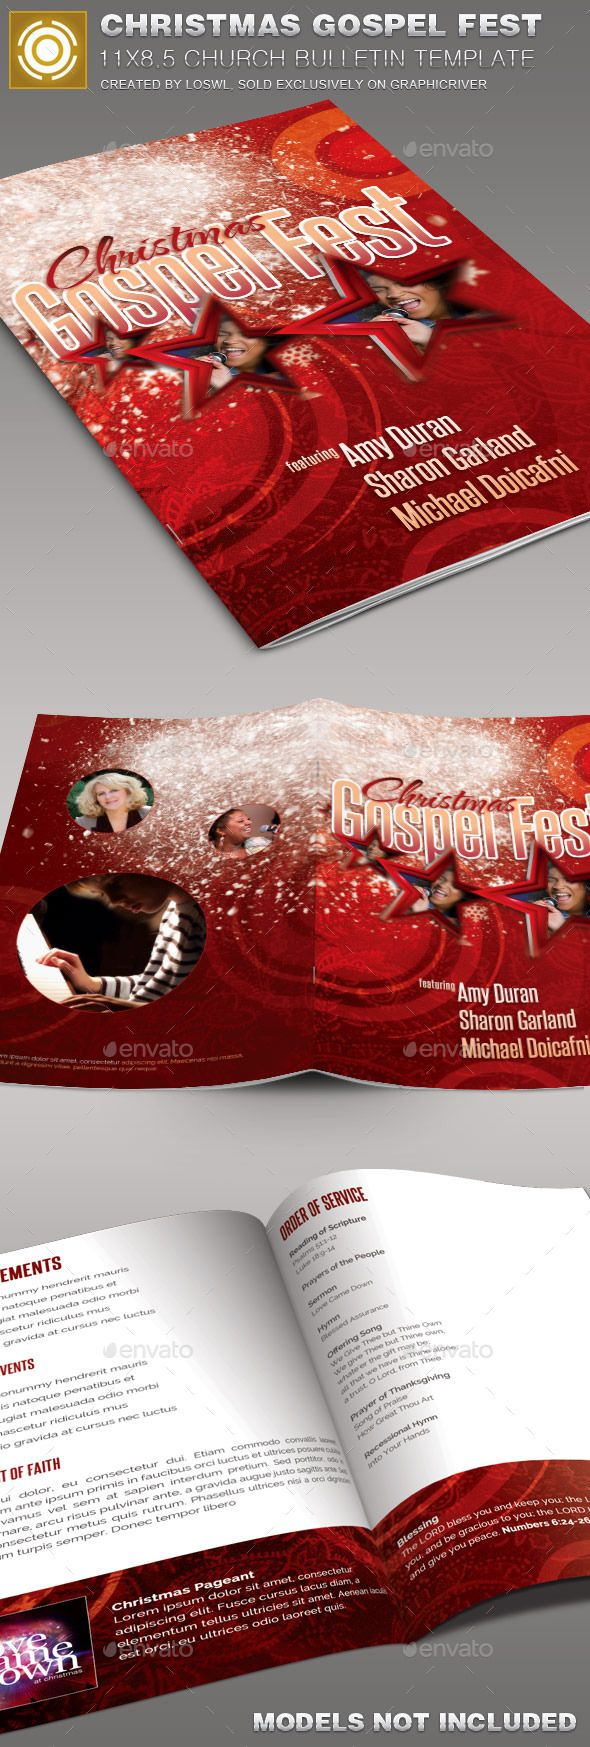 Best Church Bulletin Templates Images On   Brochure